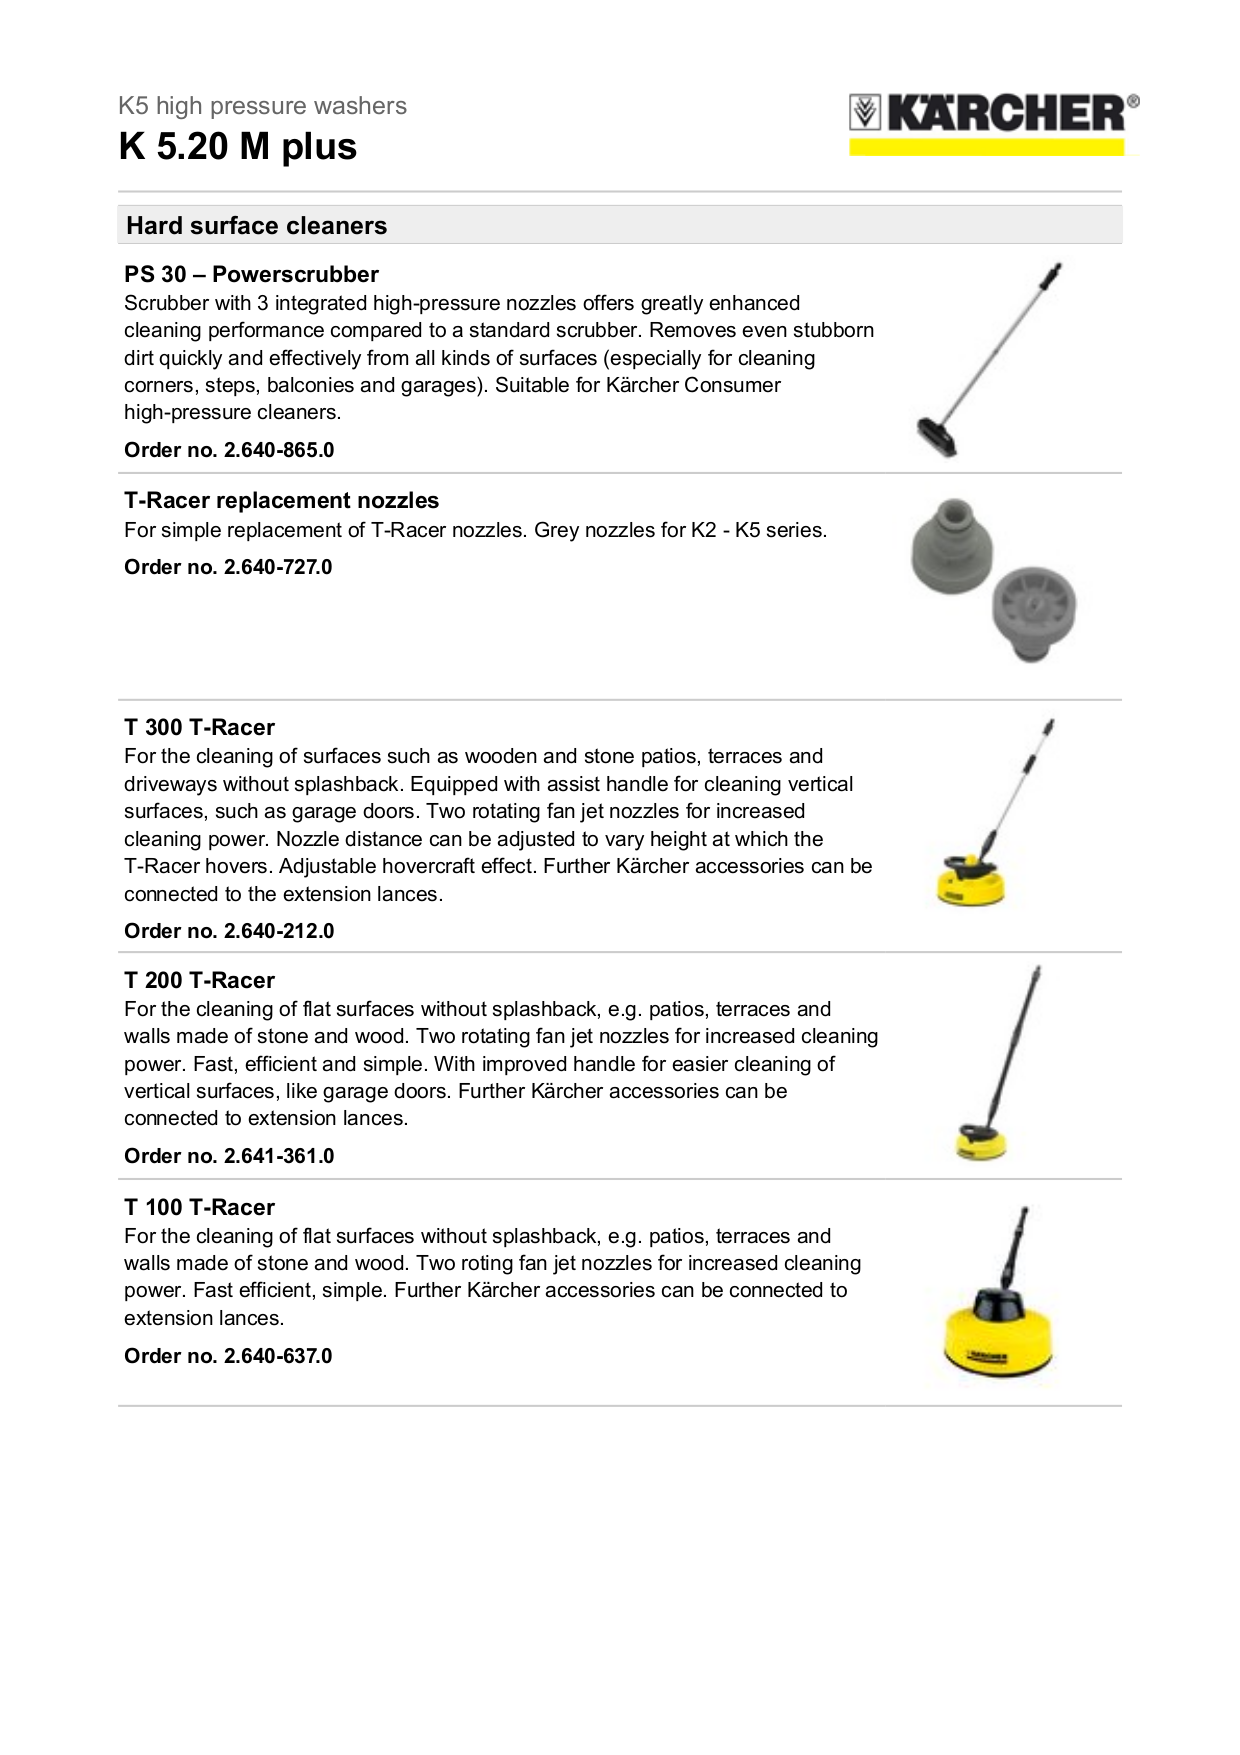 Pdf mplus manual version 7 pdf 28 pages triumph motorcycle mplus manual version 7 pdf pdf manual for karcher other k 520 m pressure washers fandeluxe Images